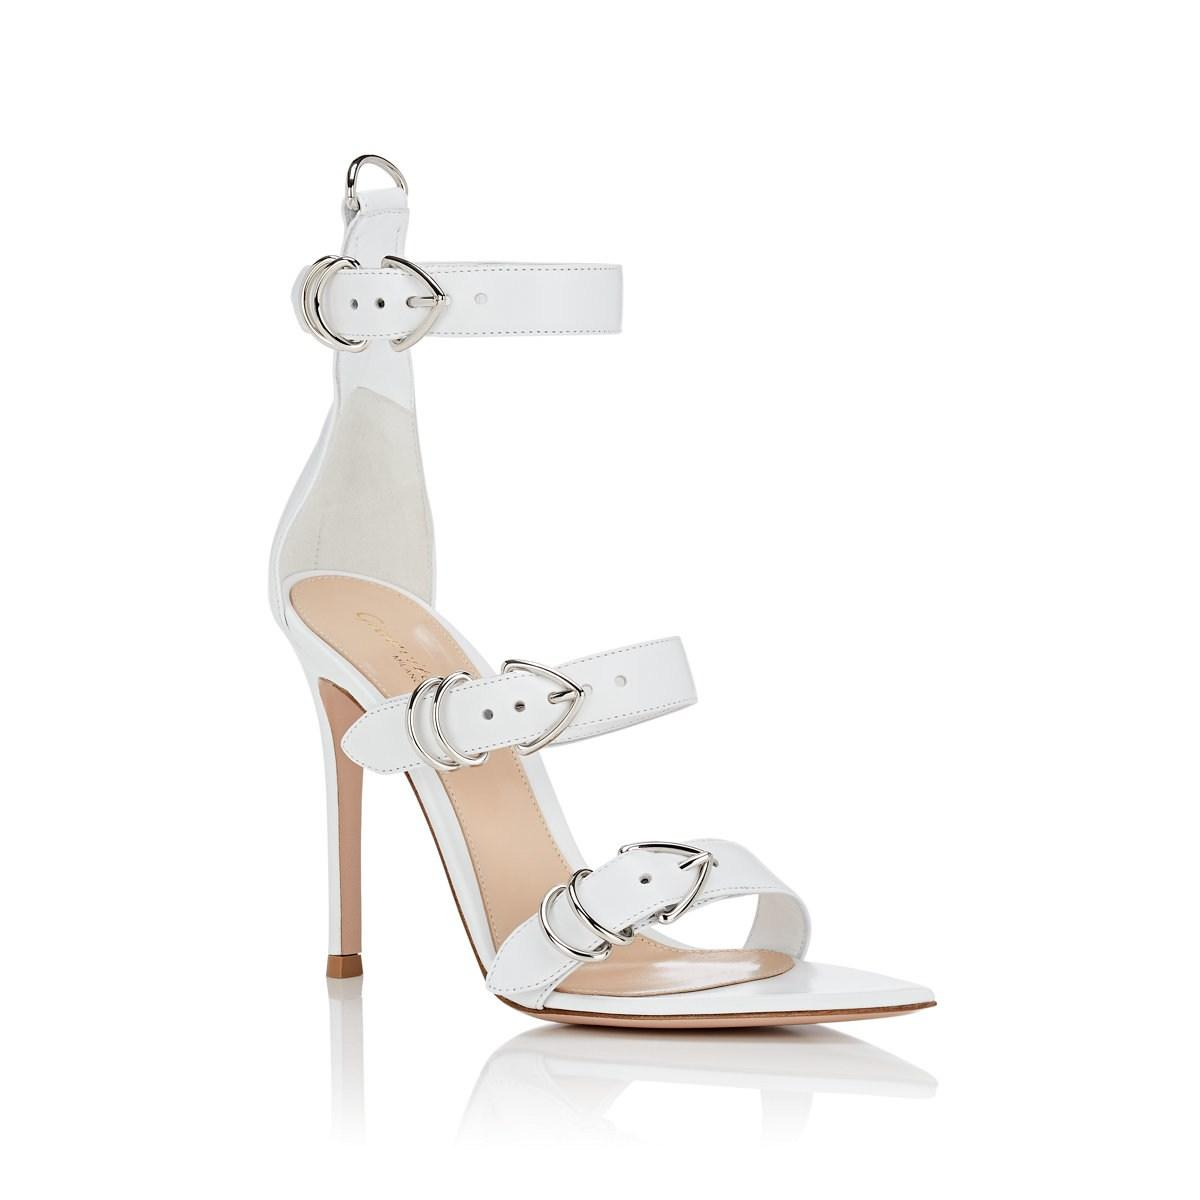 19ec74b7b20 Gianvito Rossi - White Leather Ankle-strap Sandals - Lyst. View fullscreen